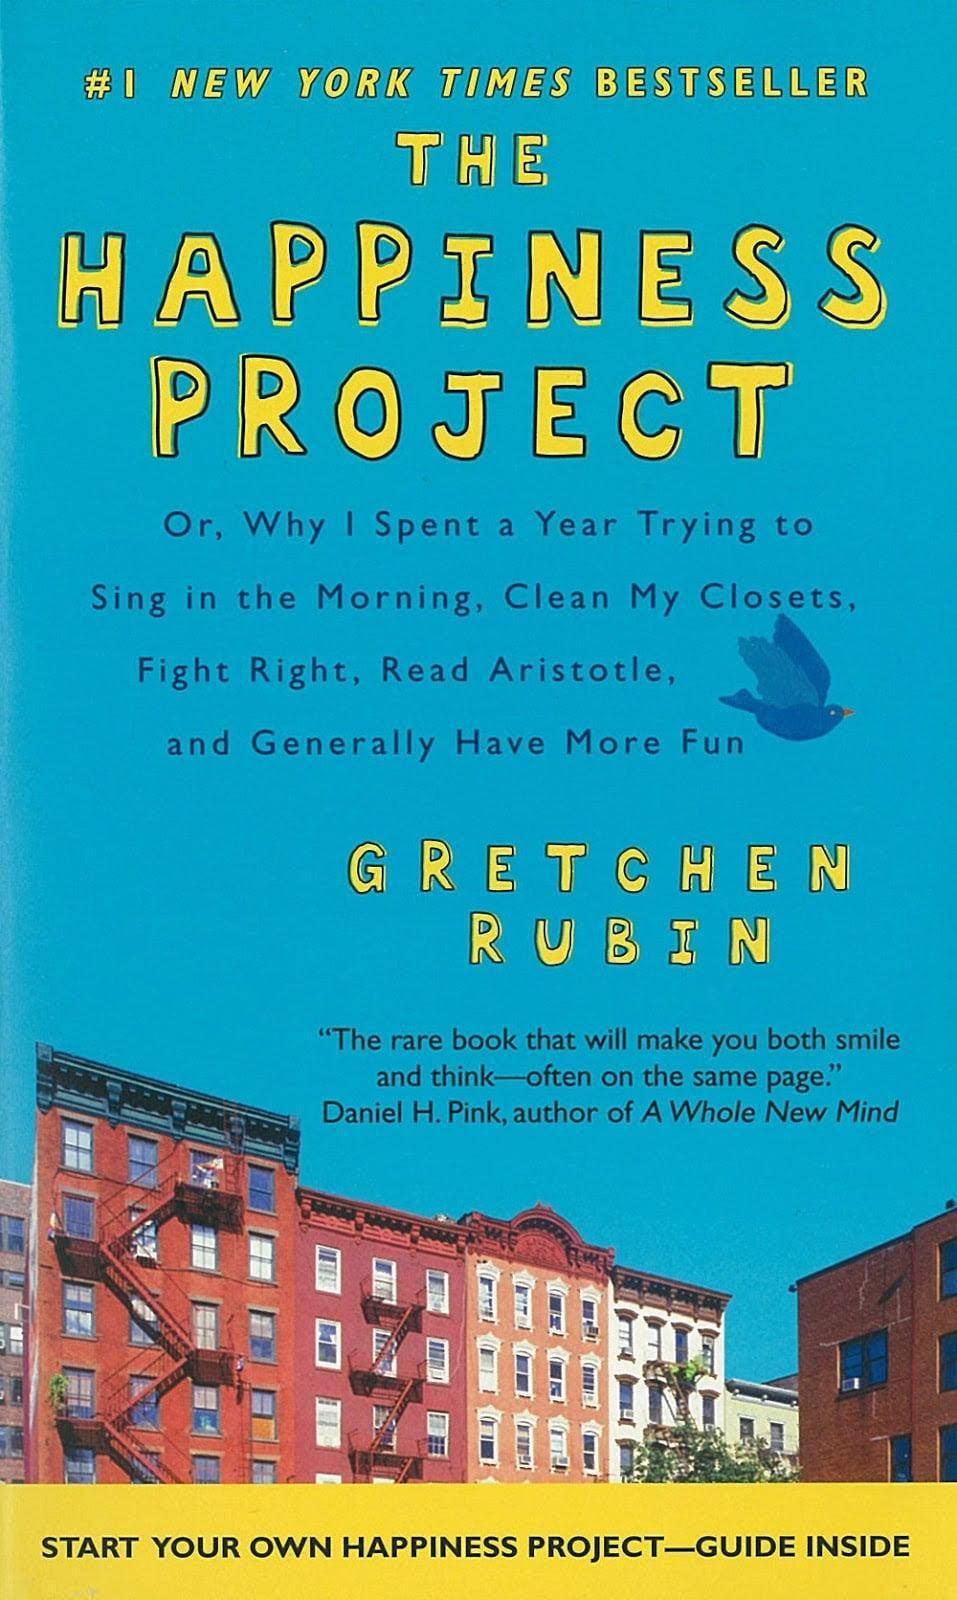 <p>One rainy afternoon on a bus, Gretchen Rubin decided to dedicate one year of her life to happiness. <span>The Happiness Project</span> recounts Rubin's adventures upon living life the scientifically backed happy way. </p>